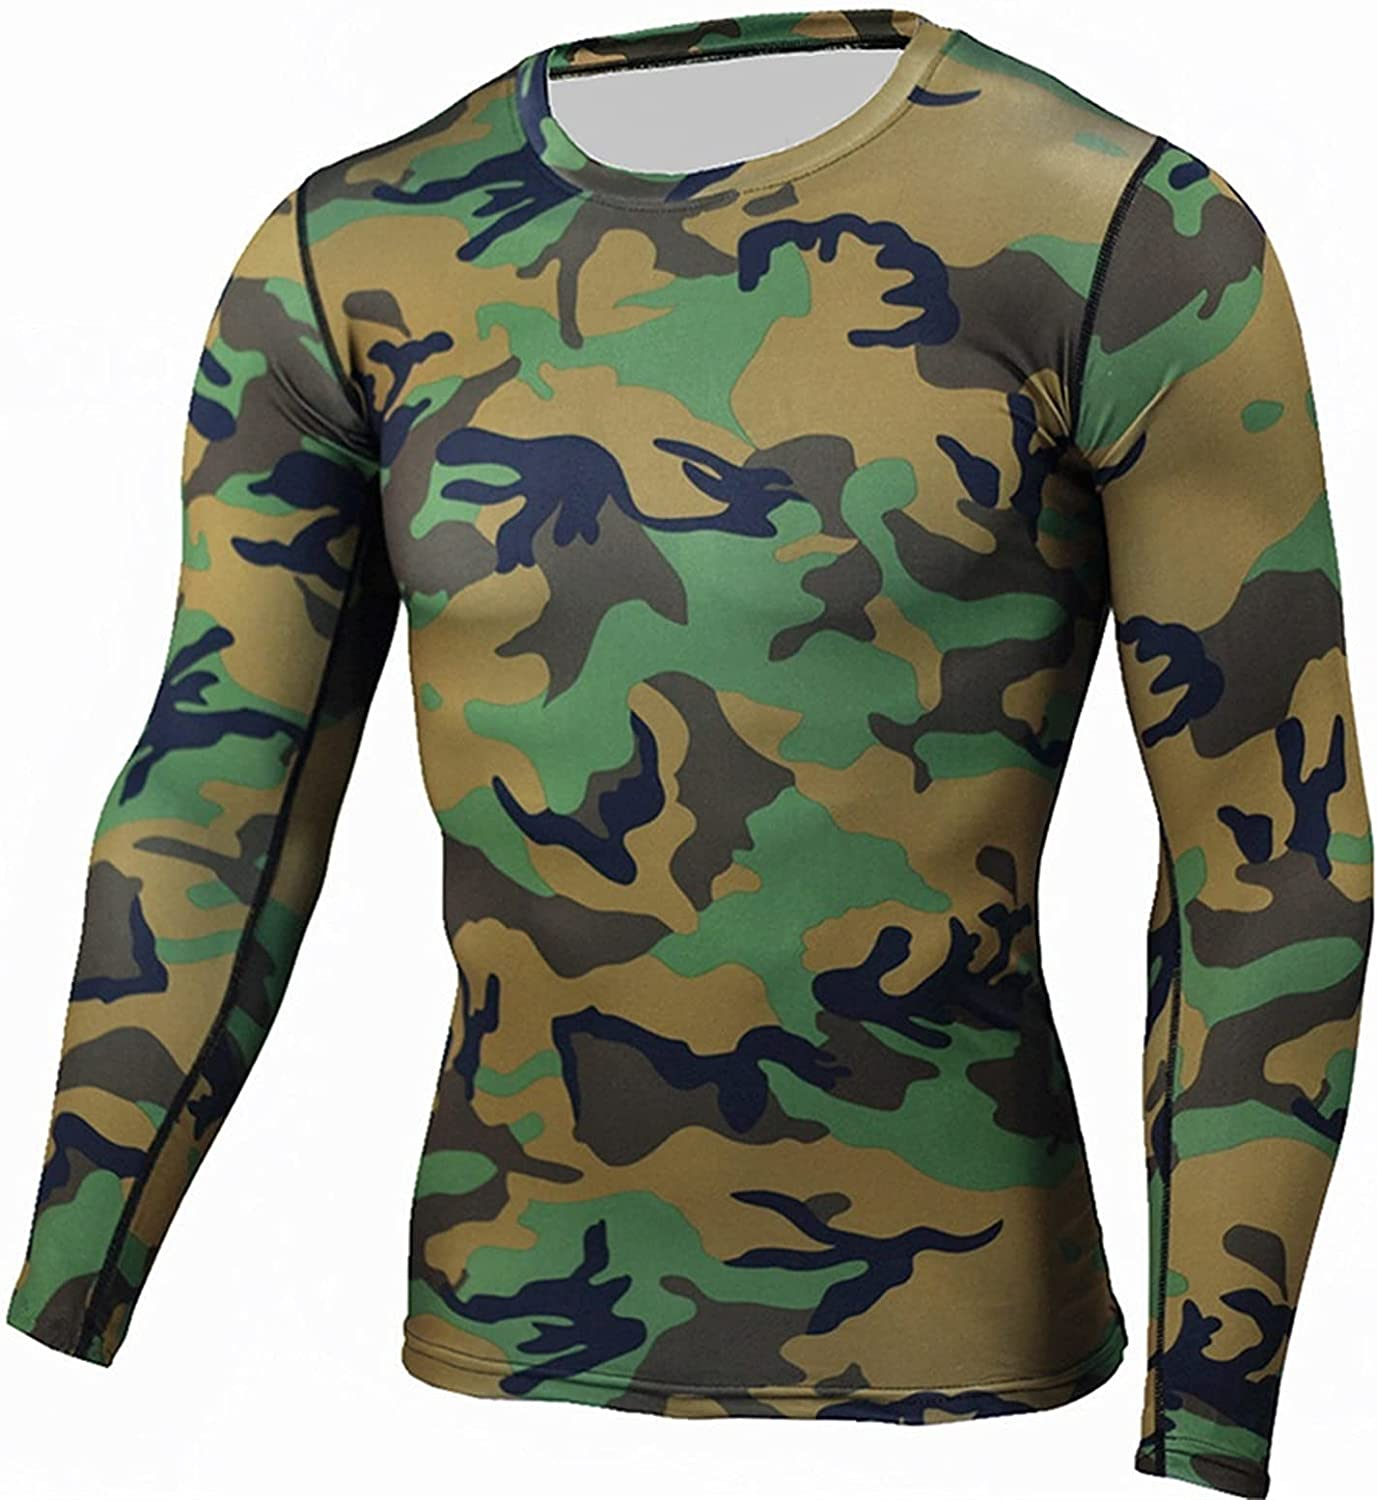 ZYKBB Thermal Underwear Men Quick Dry Sport Clothes for Men Camouflage Underwear Top Inner Shirt (Color : B, Size : XXL code)